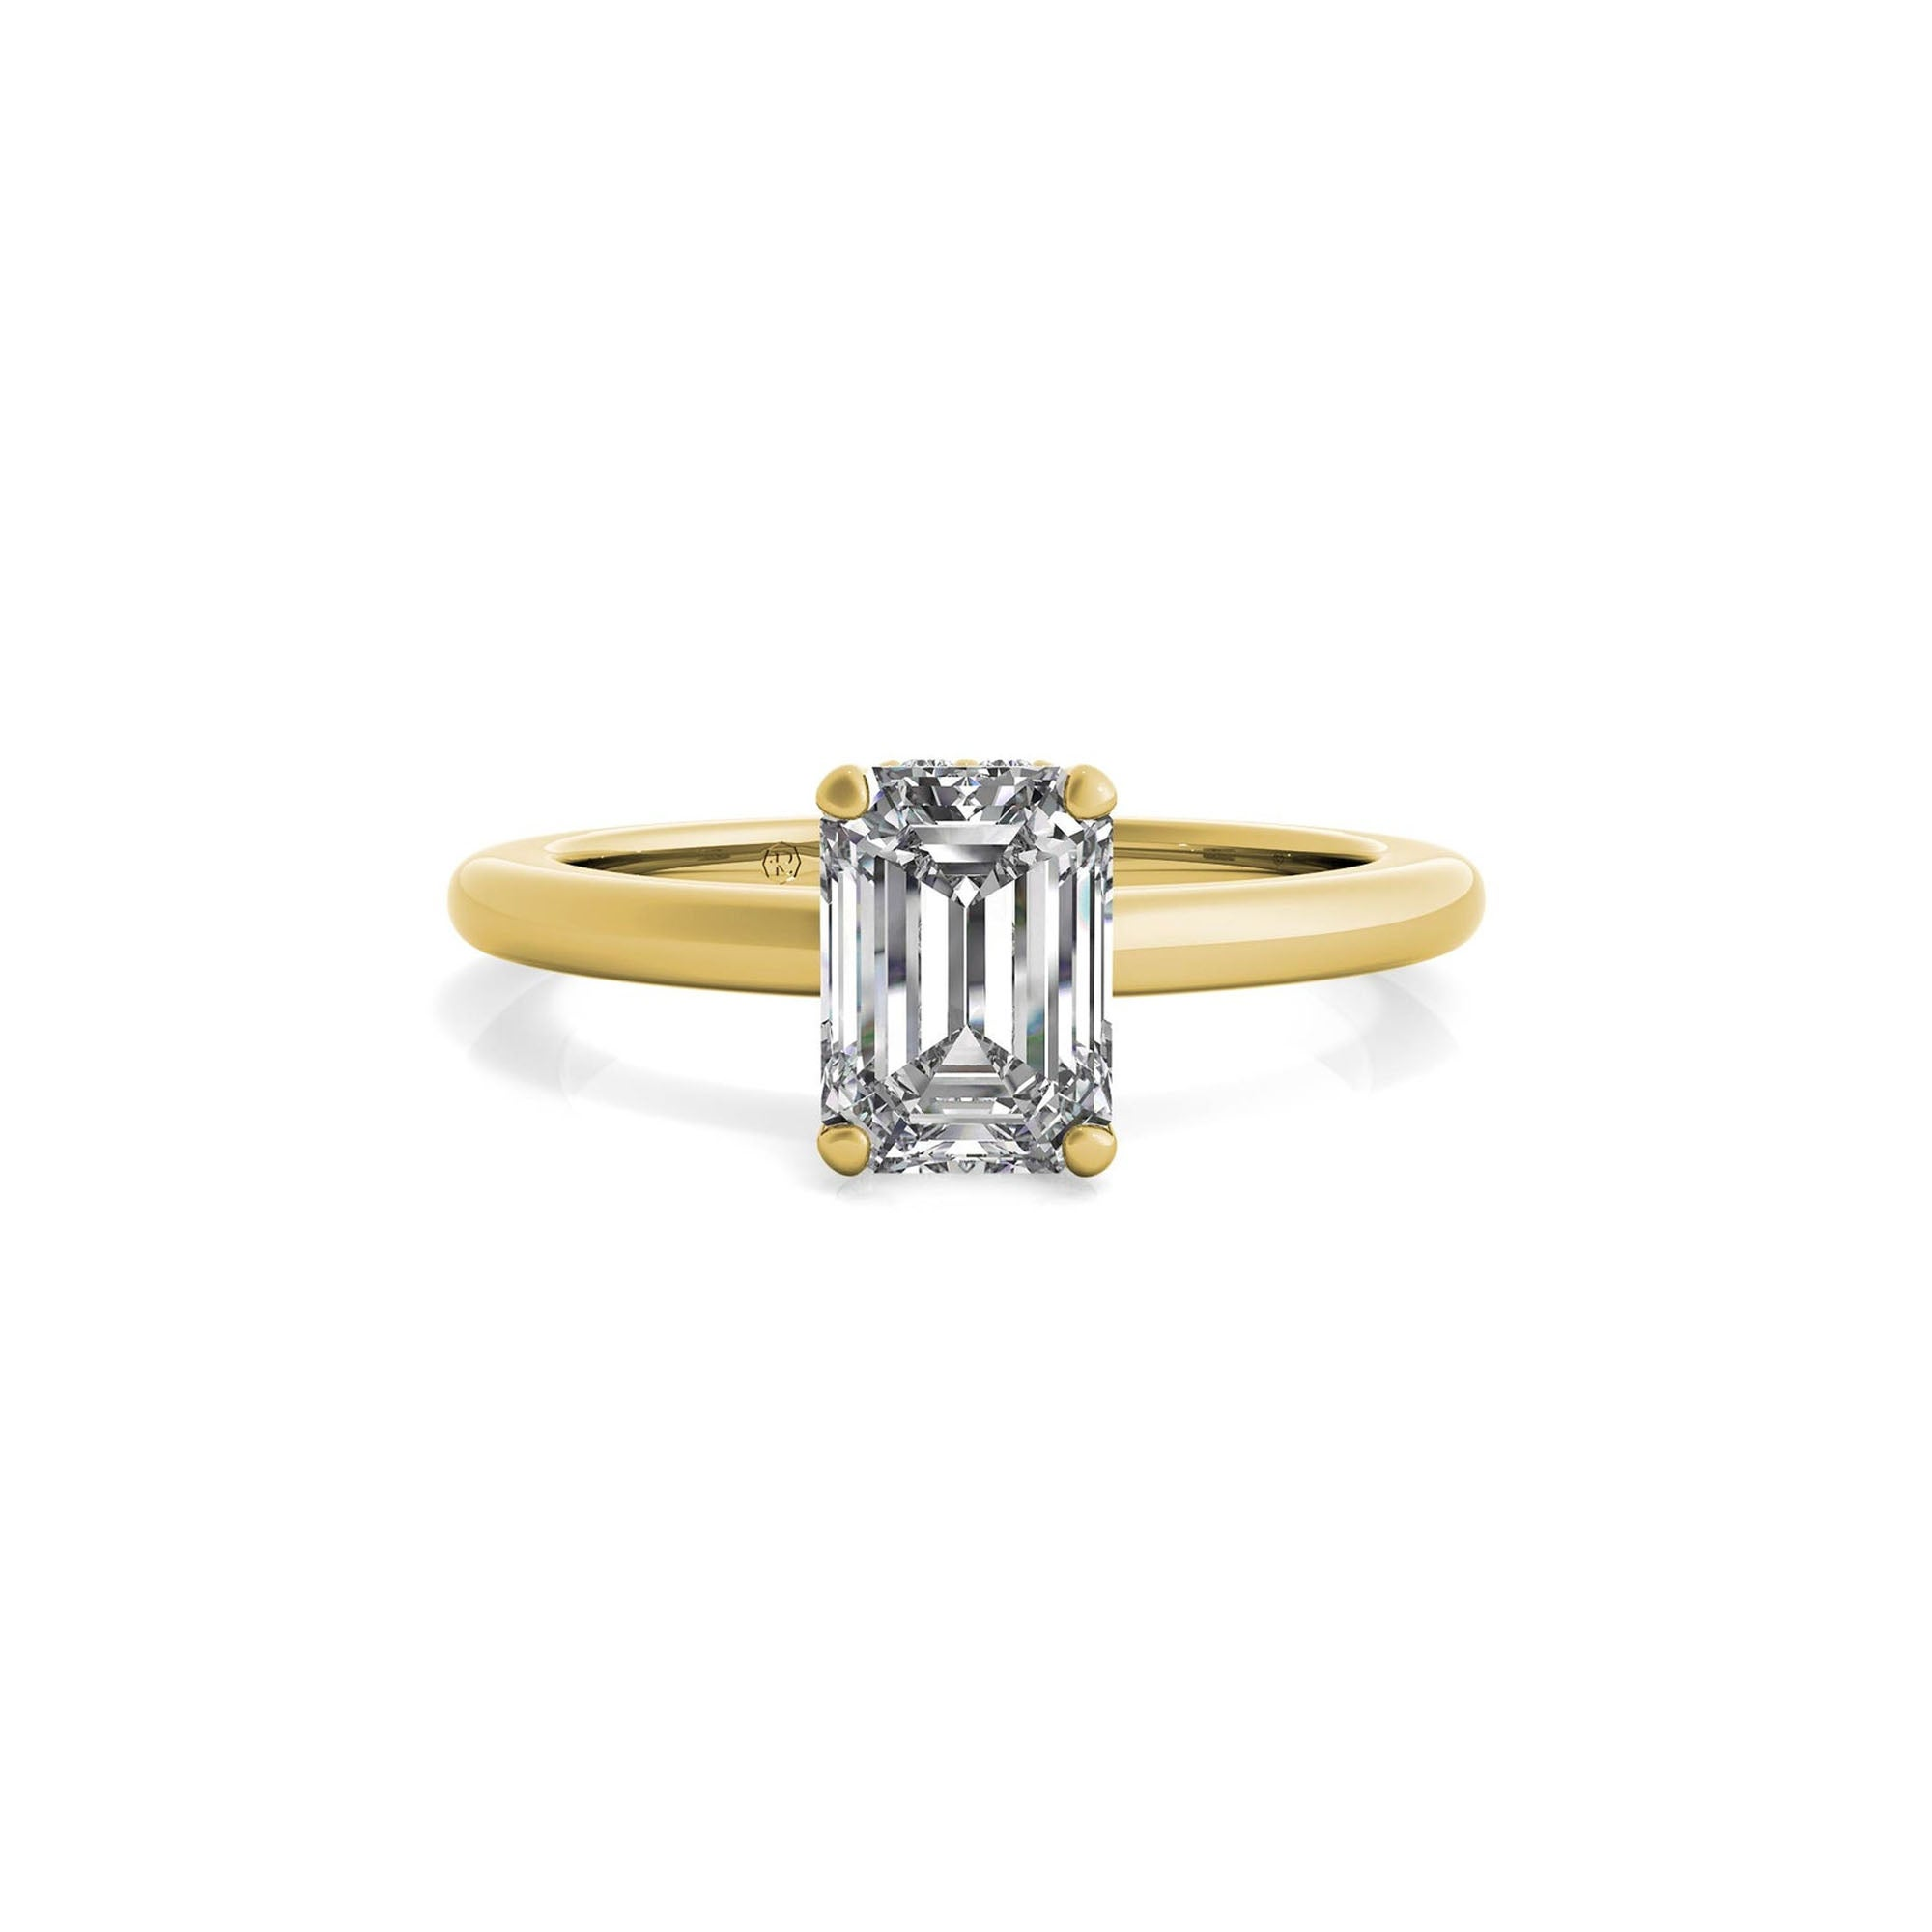 Ritani emerald cut engagement ring